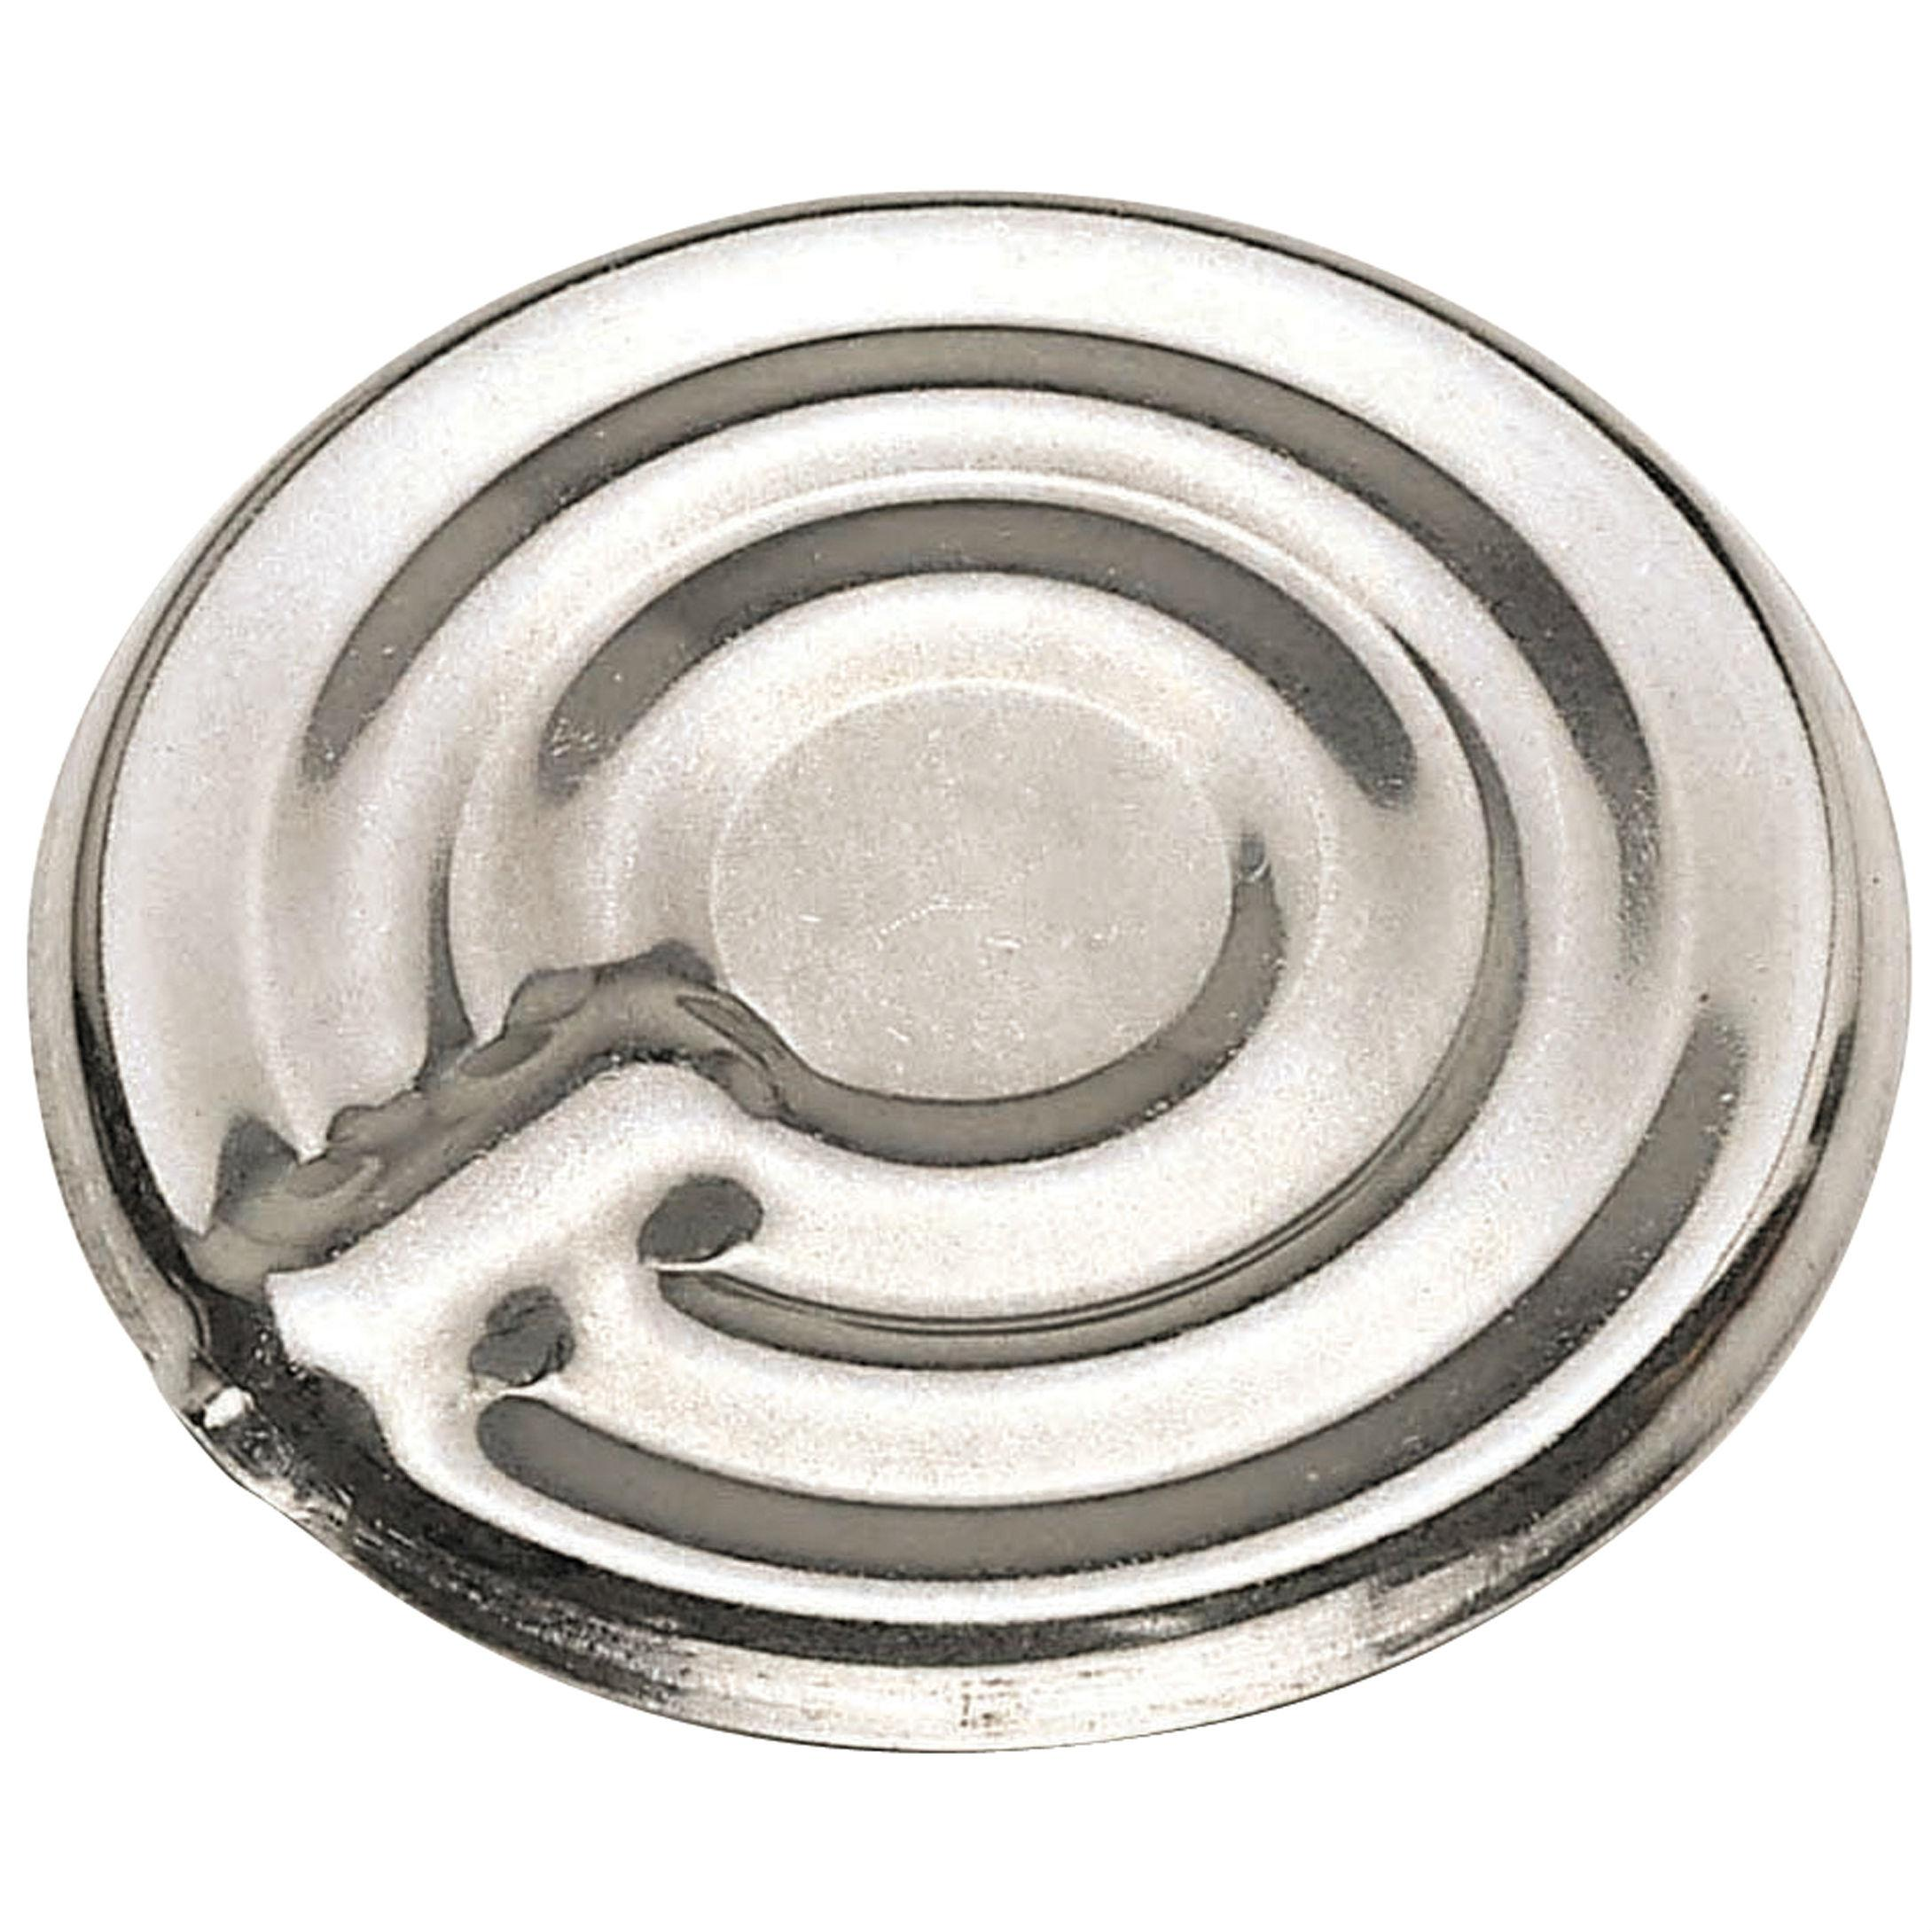 Kitchencraft Stainless Steel Pot Watcher Disc Boil Over